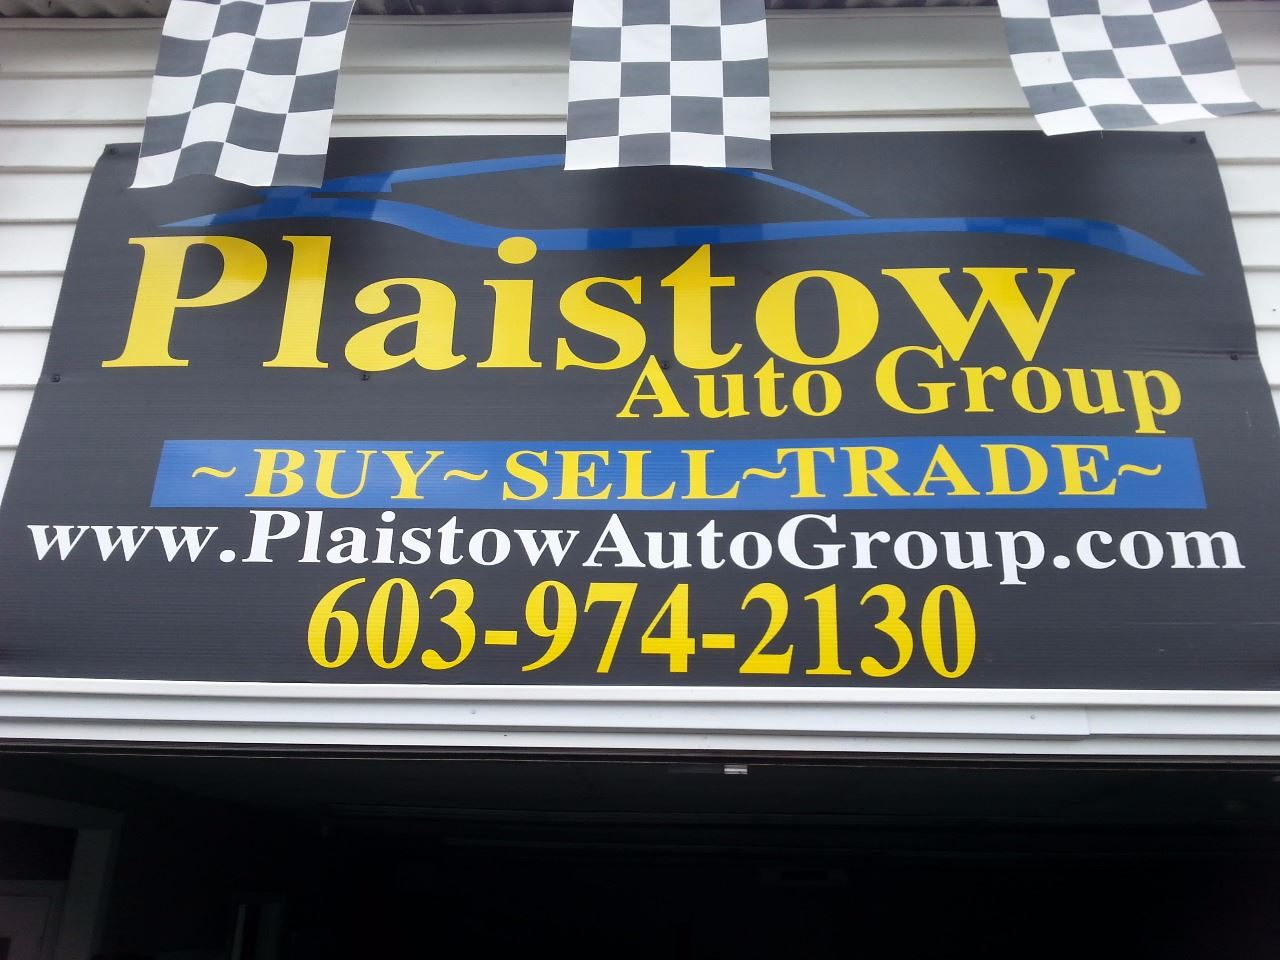 Plaistow Auto Group